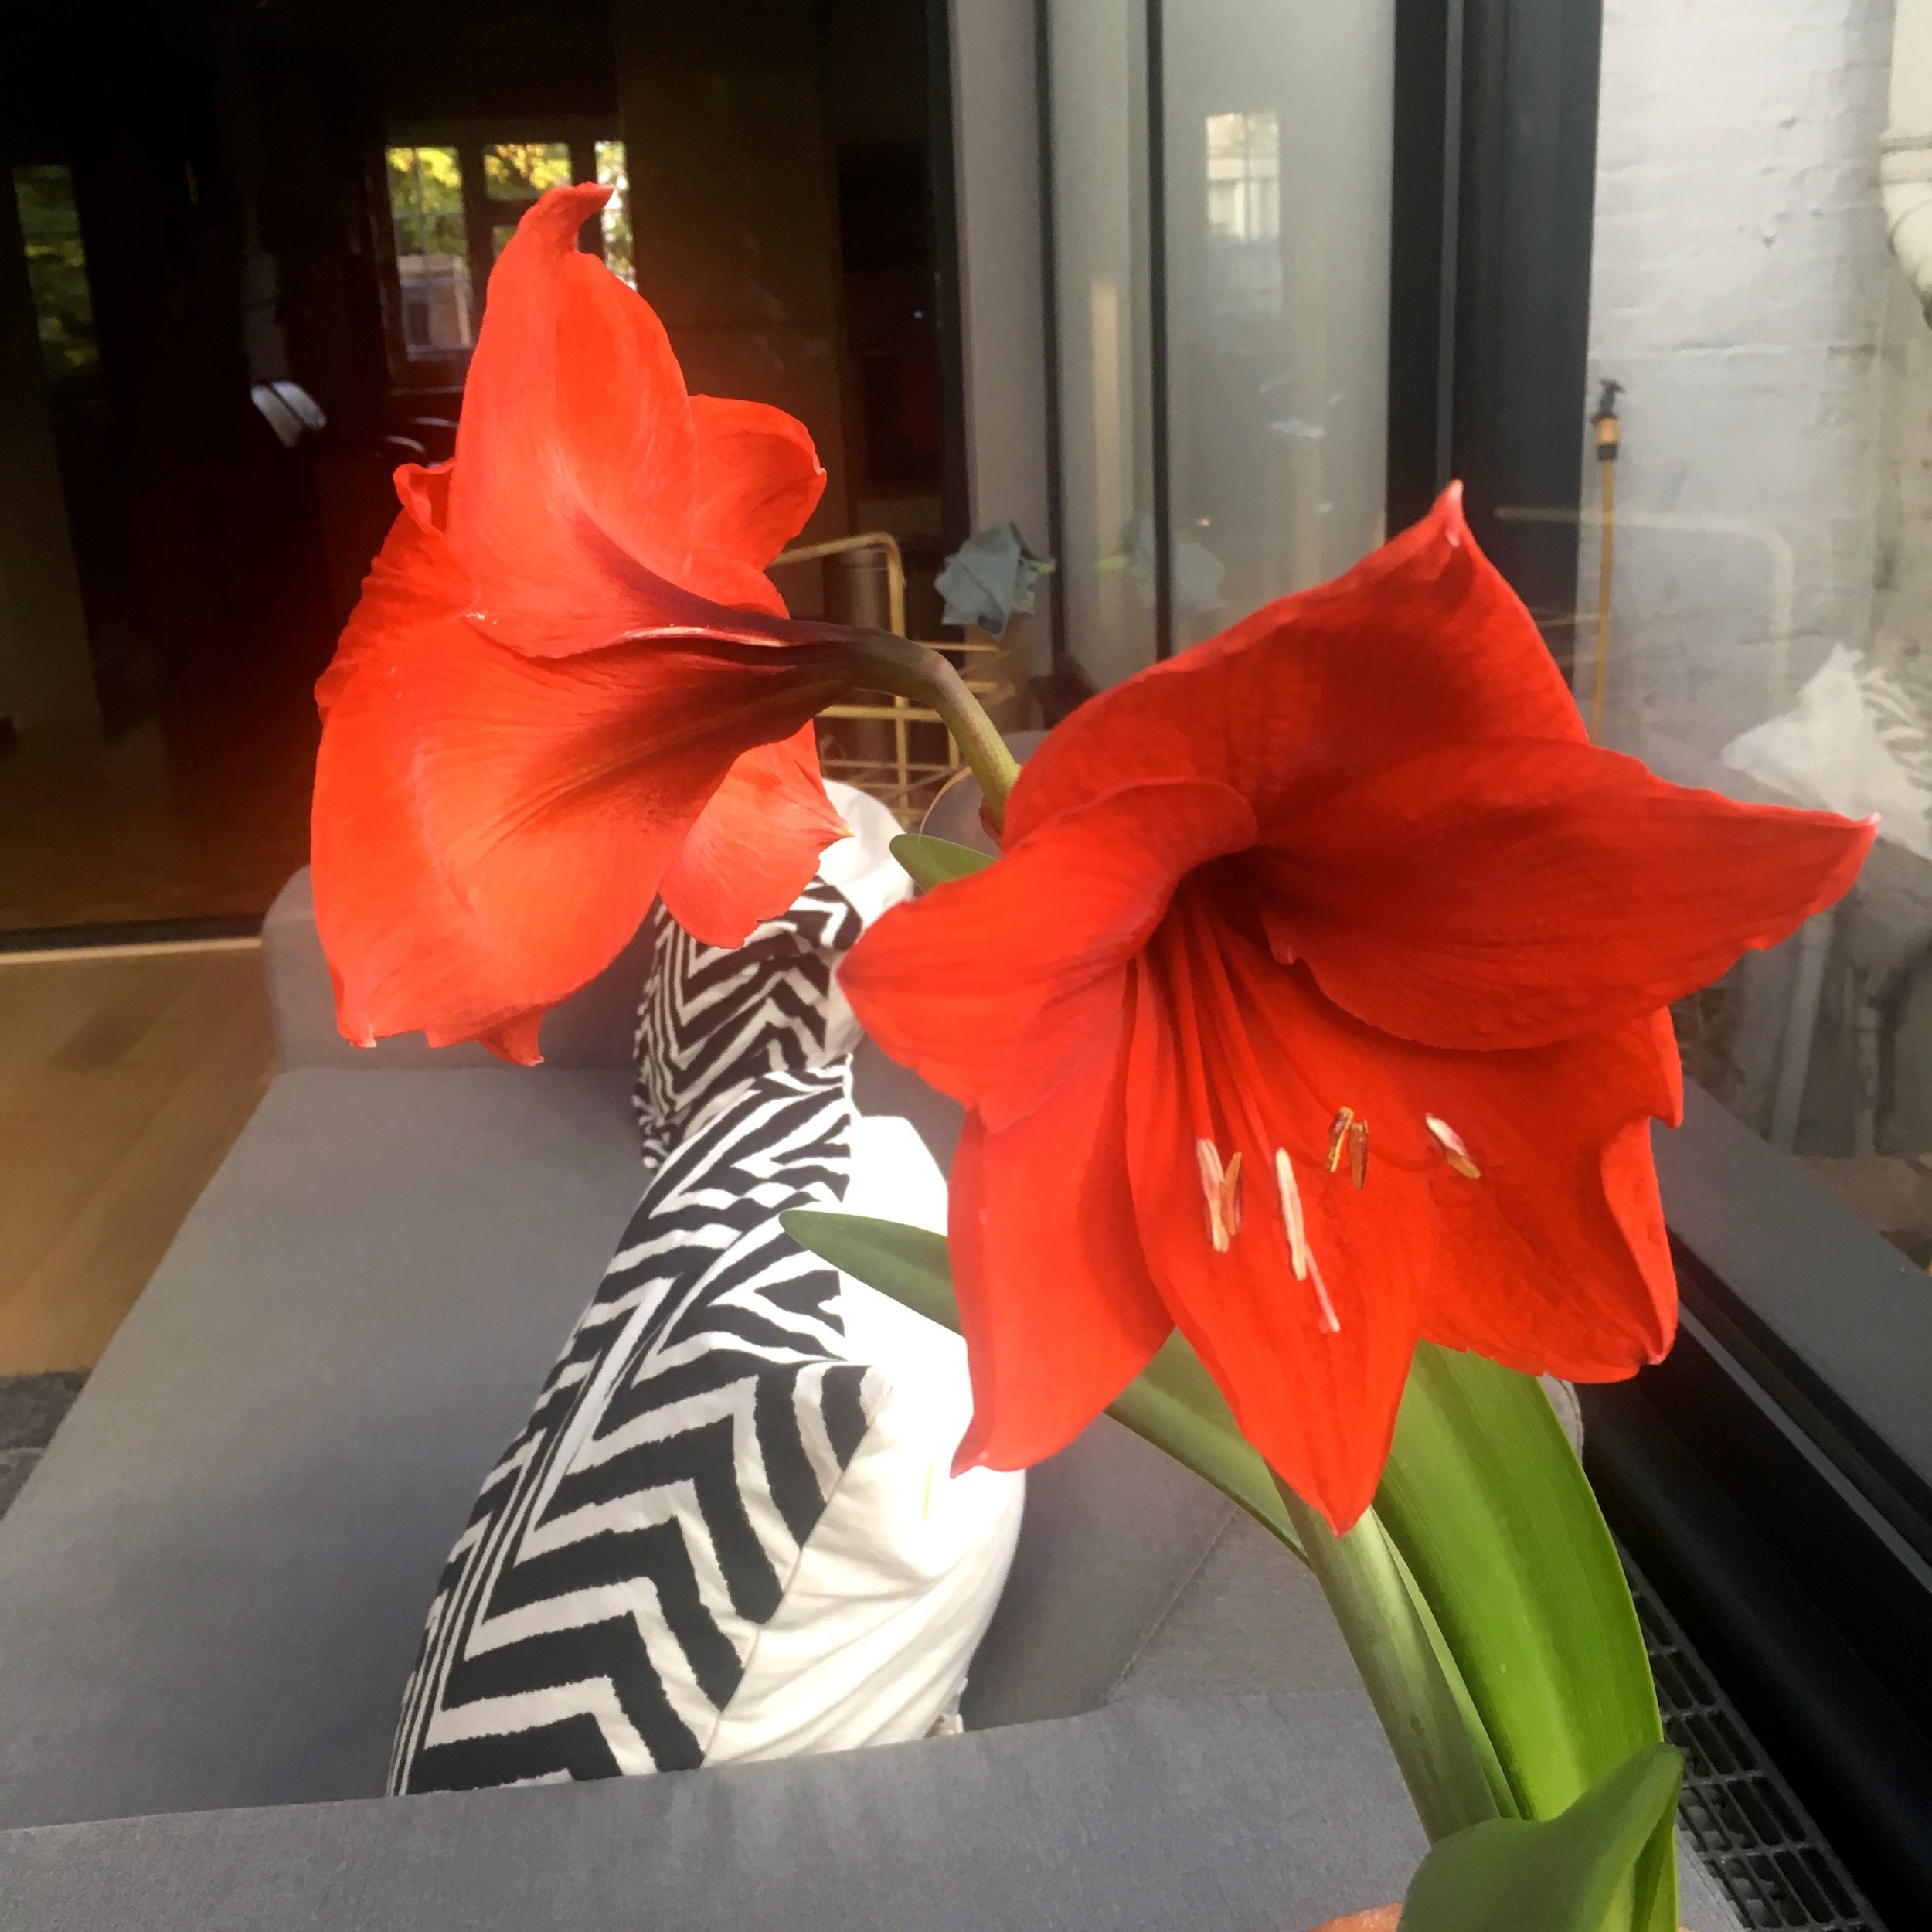 Two flowers flowering on my amaryllis from dad